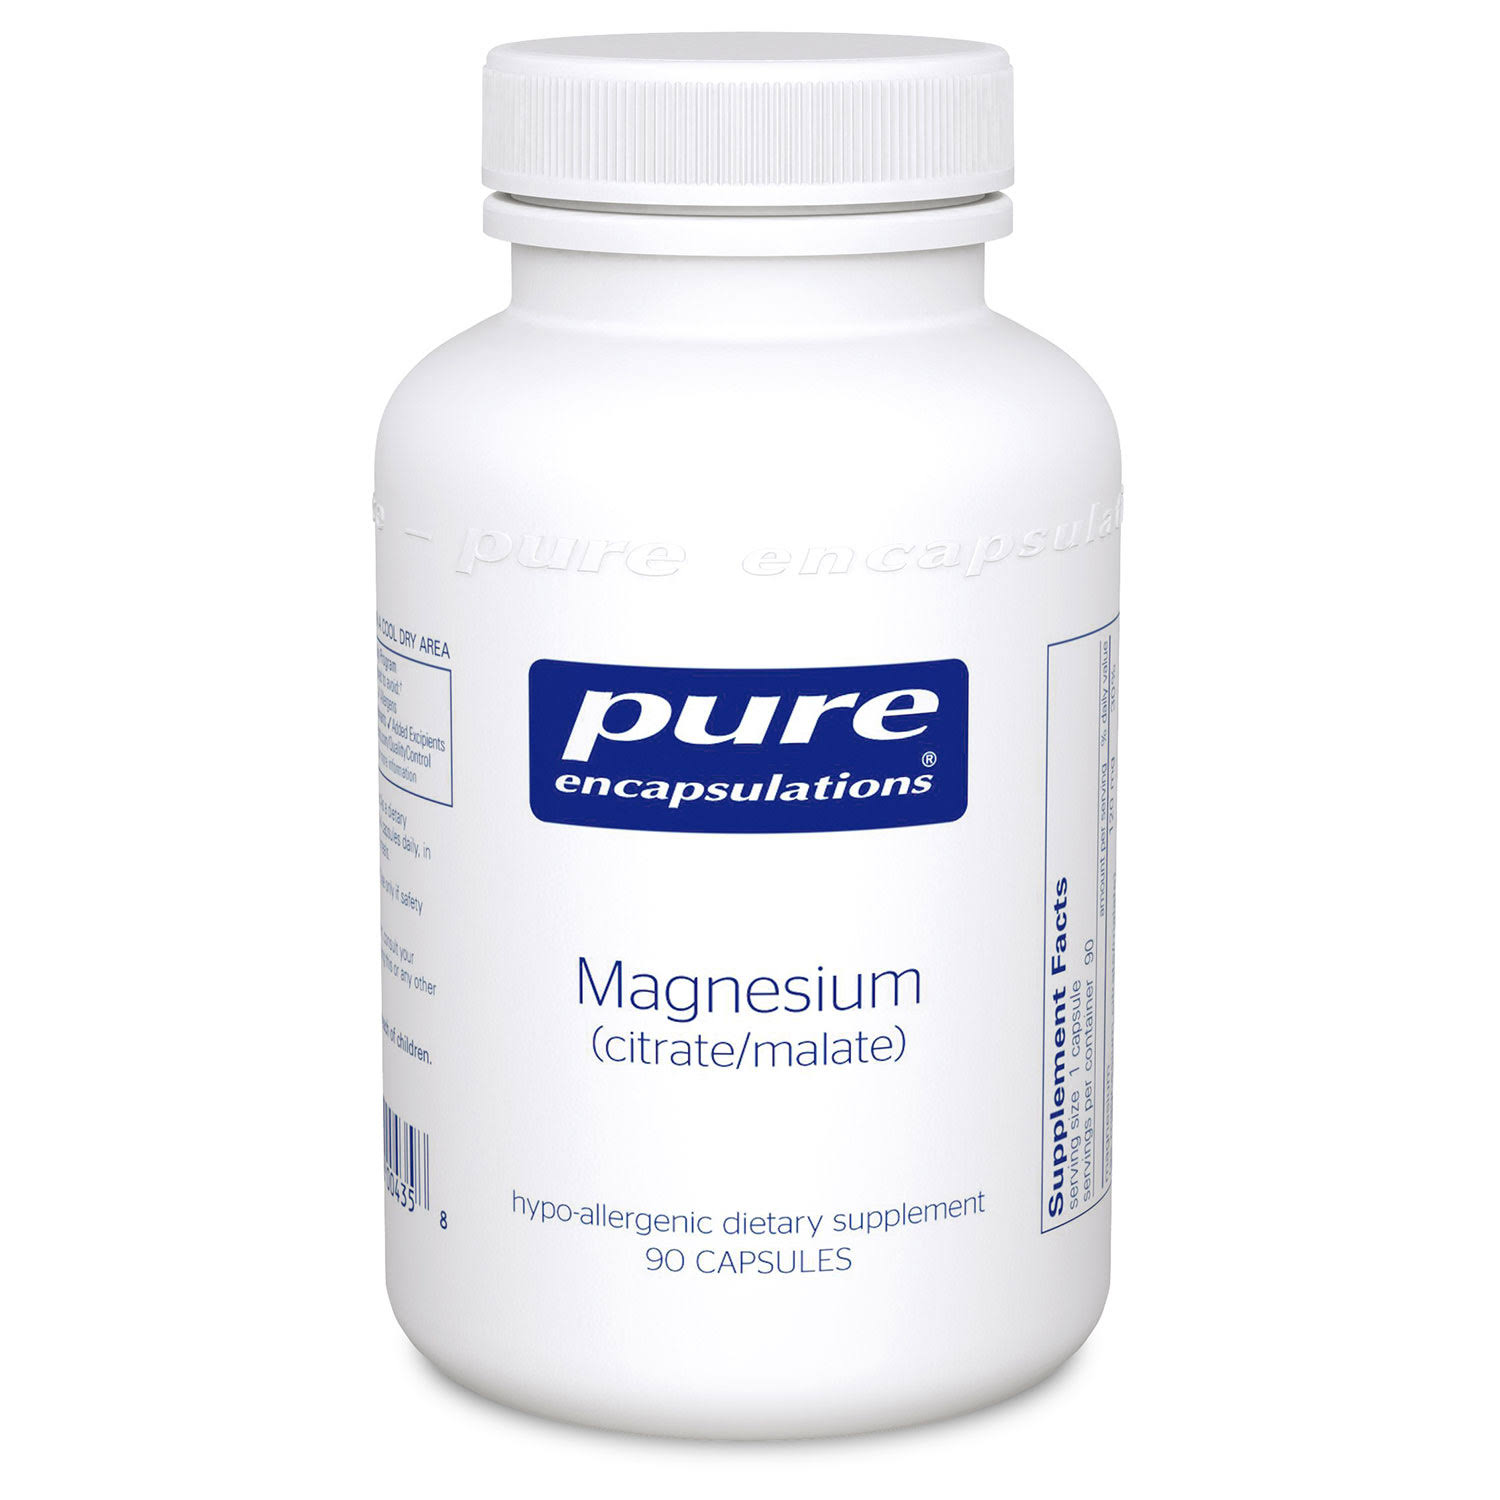 Pure Encapsulations Magnesium Citrate/Malate Hypoallergenic Supplement - 90 Capsules